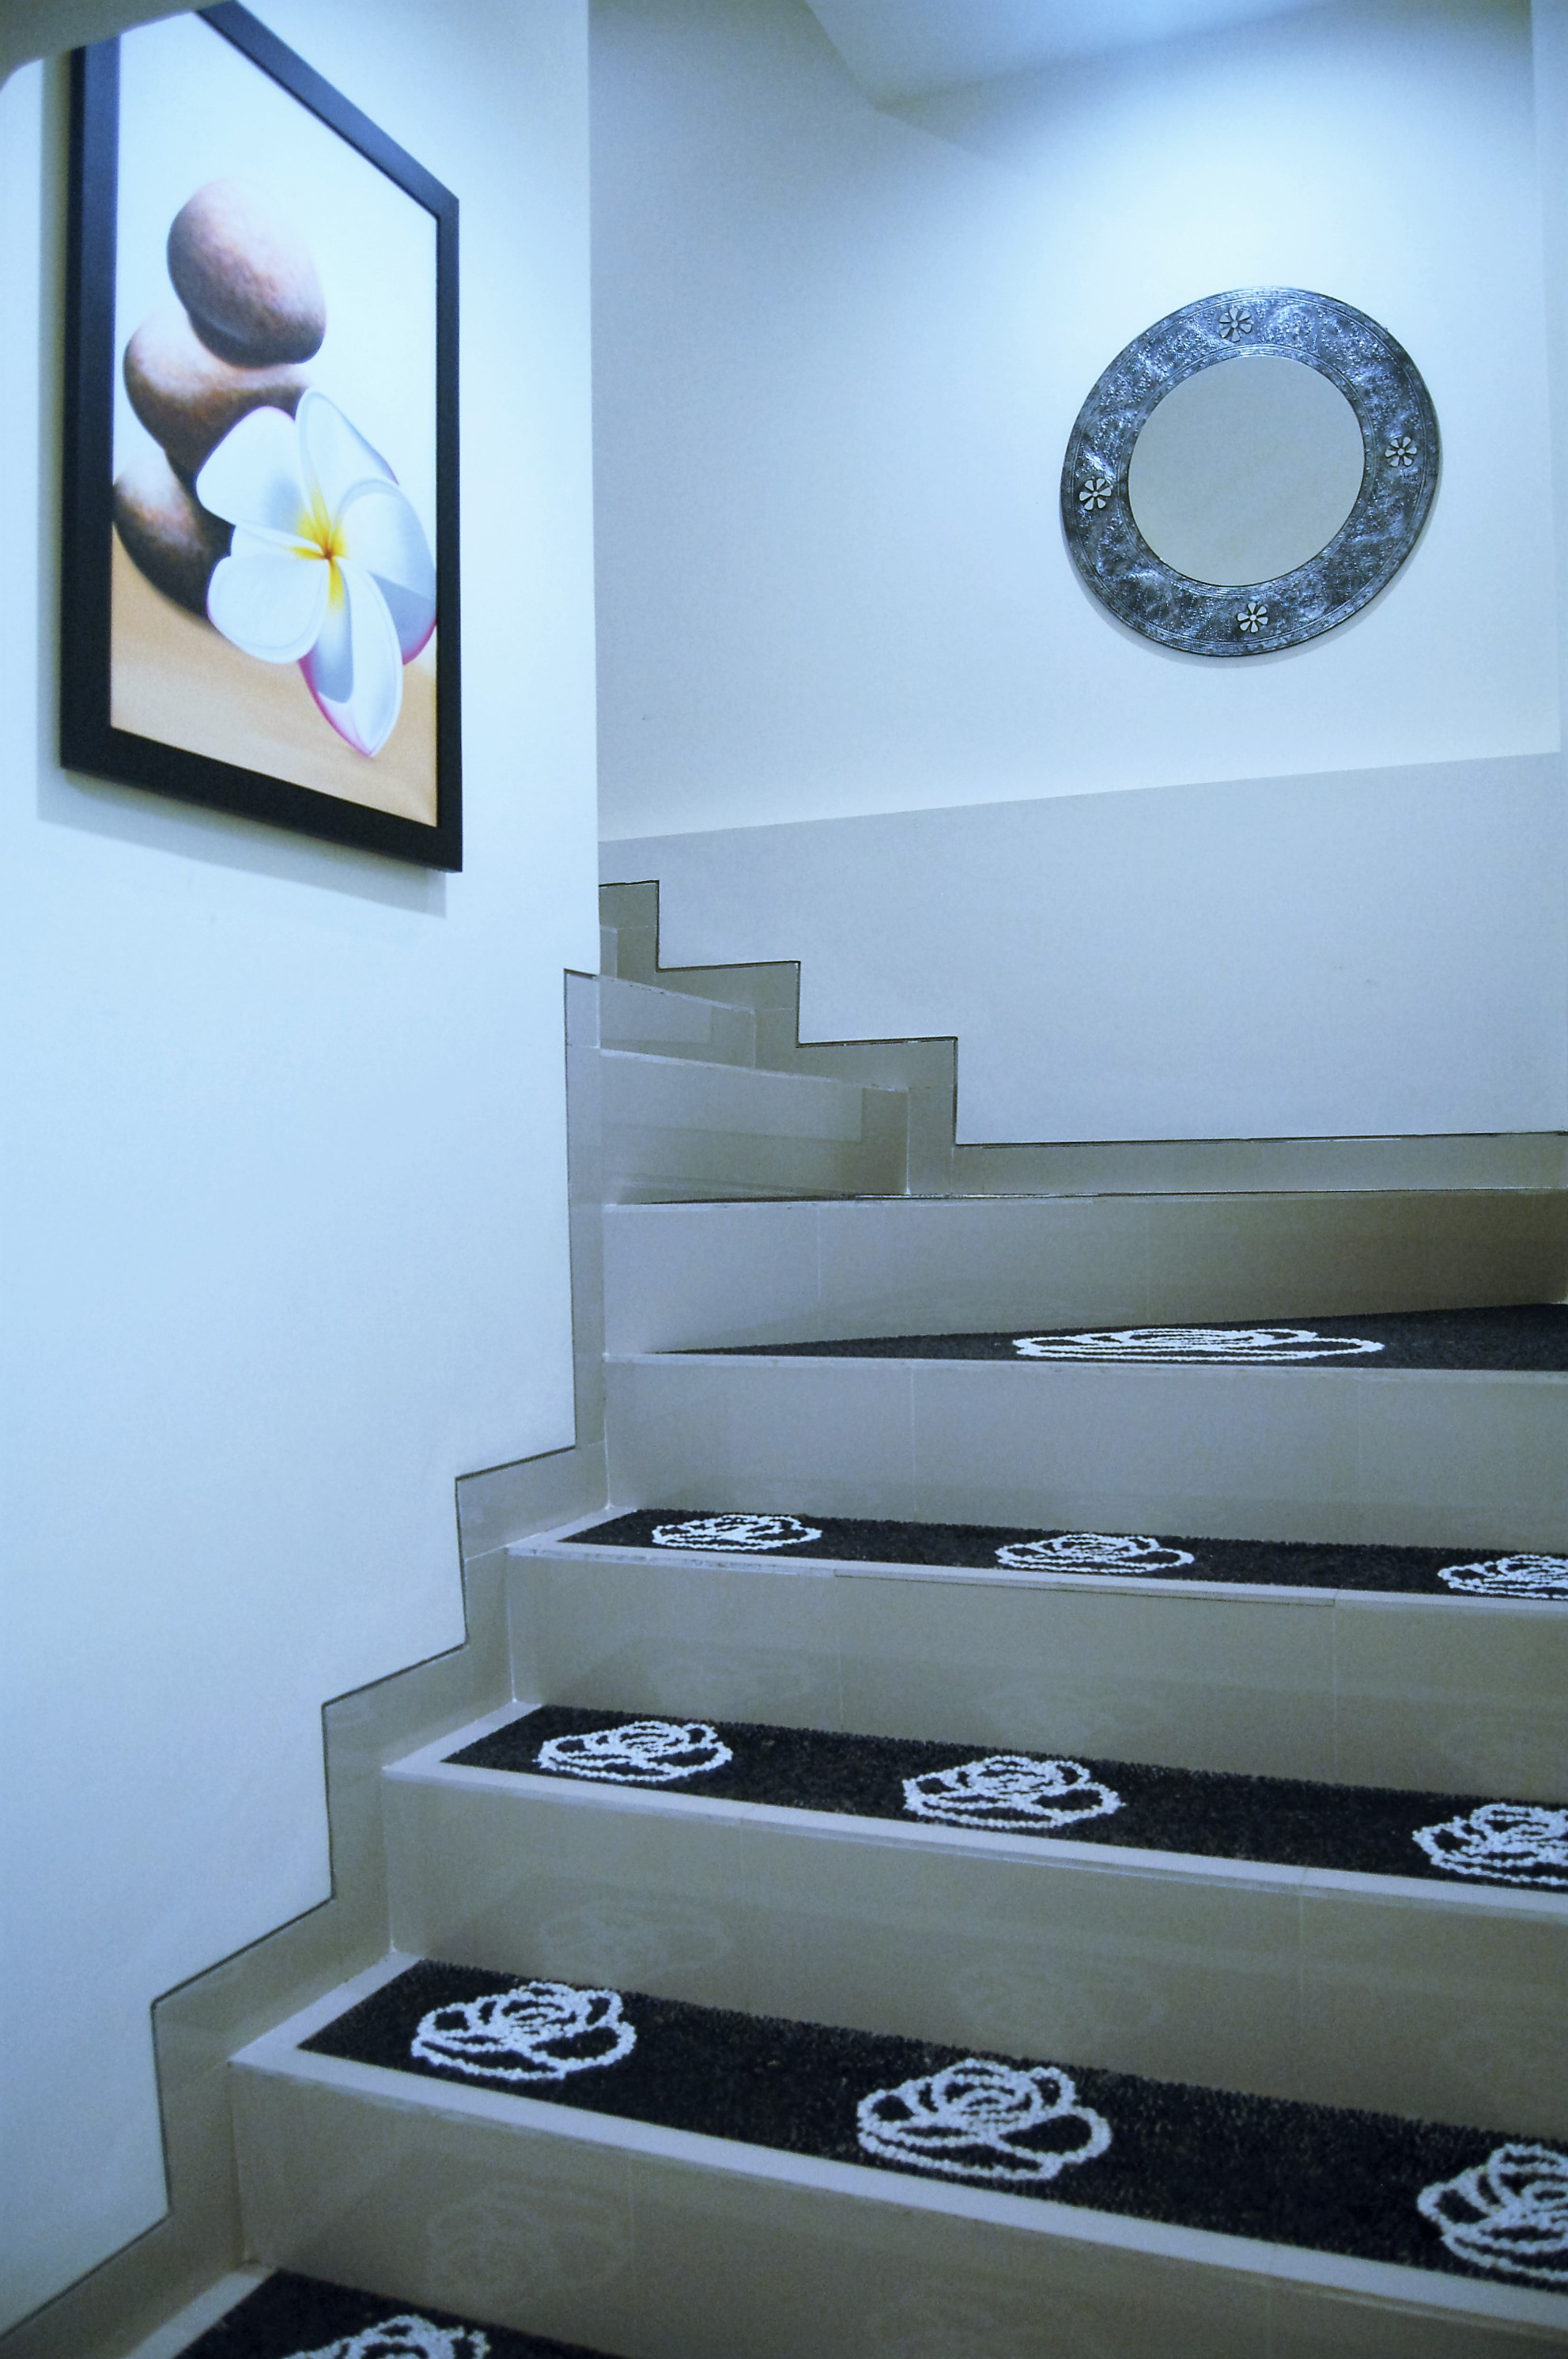 Stairway to 2nd floor